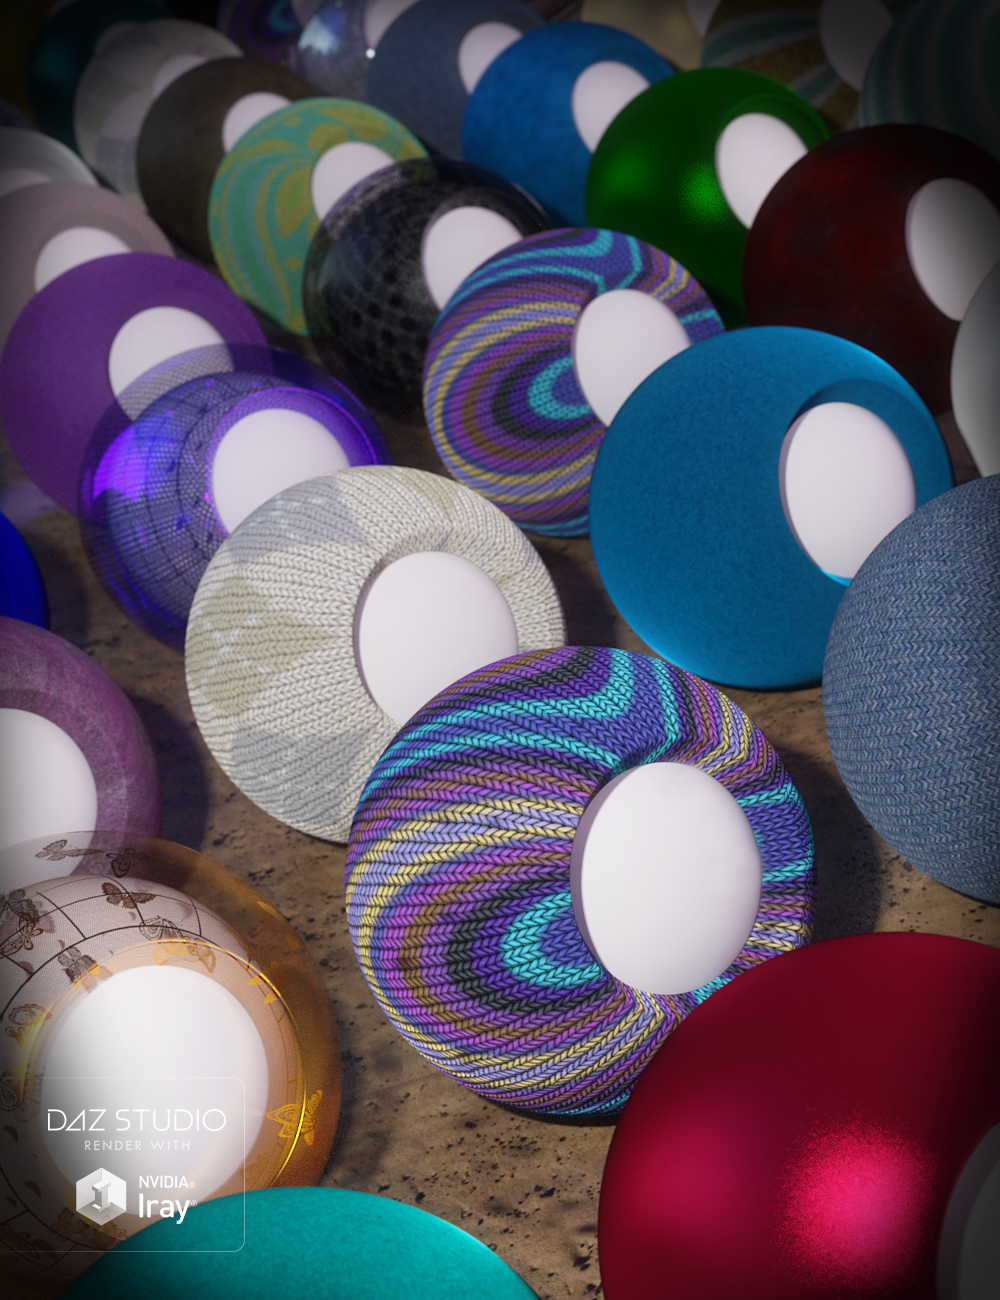 Elegant Fabric Iray Shaders by: JGreenlees, 3D Models by Daz 3D